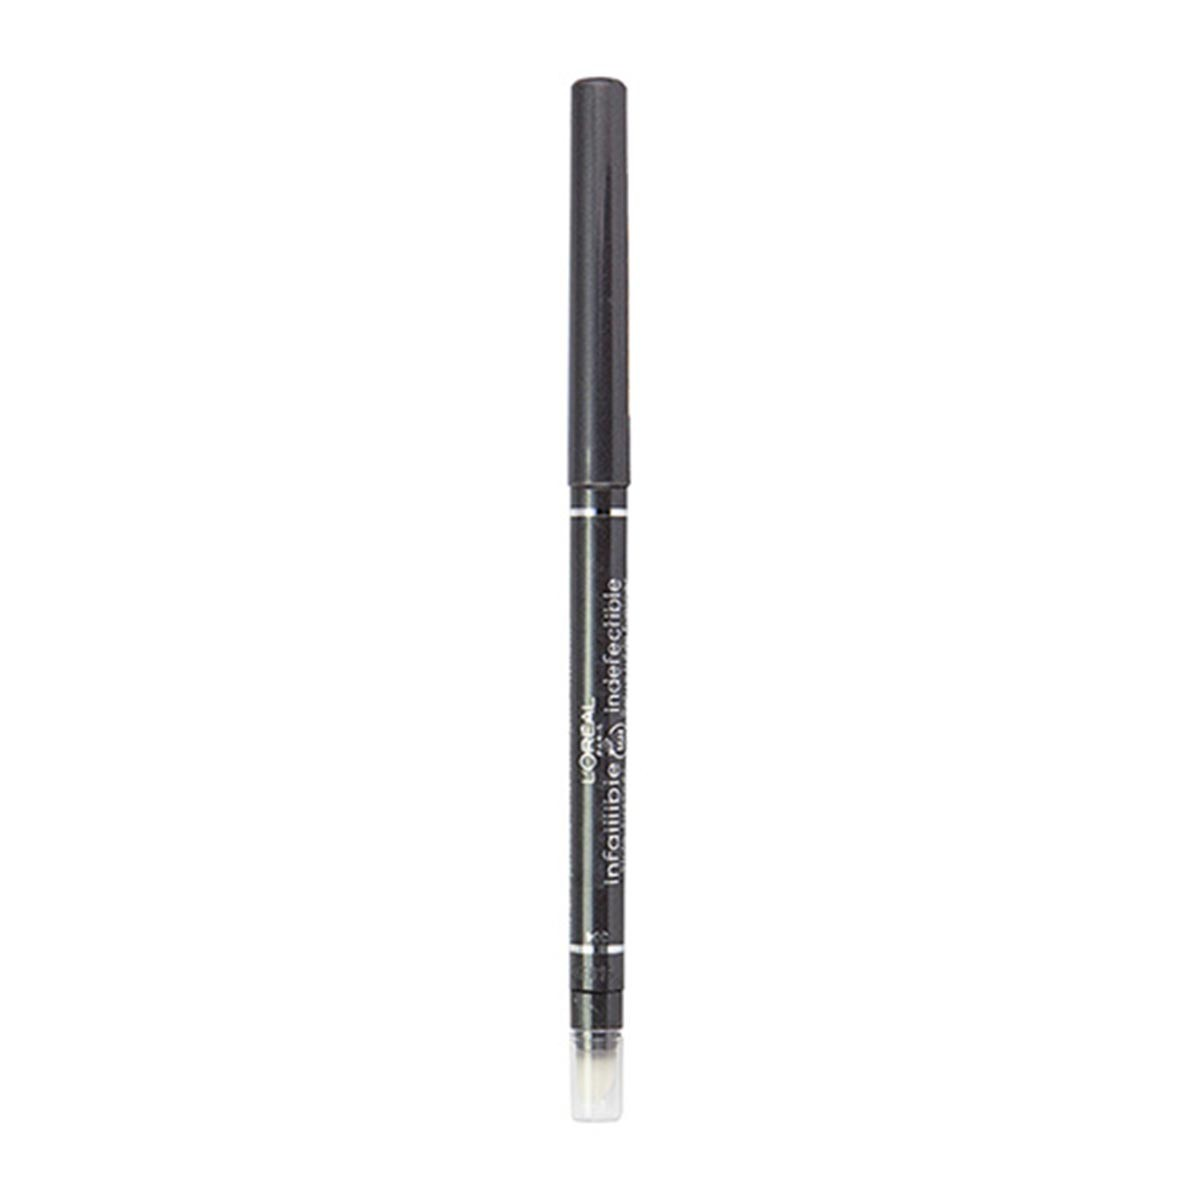 L´oreal fragrances L Oreal Infallible Eyeliner 320 Nude Obssession